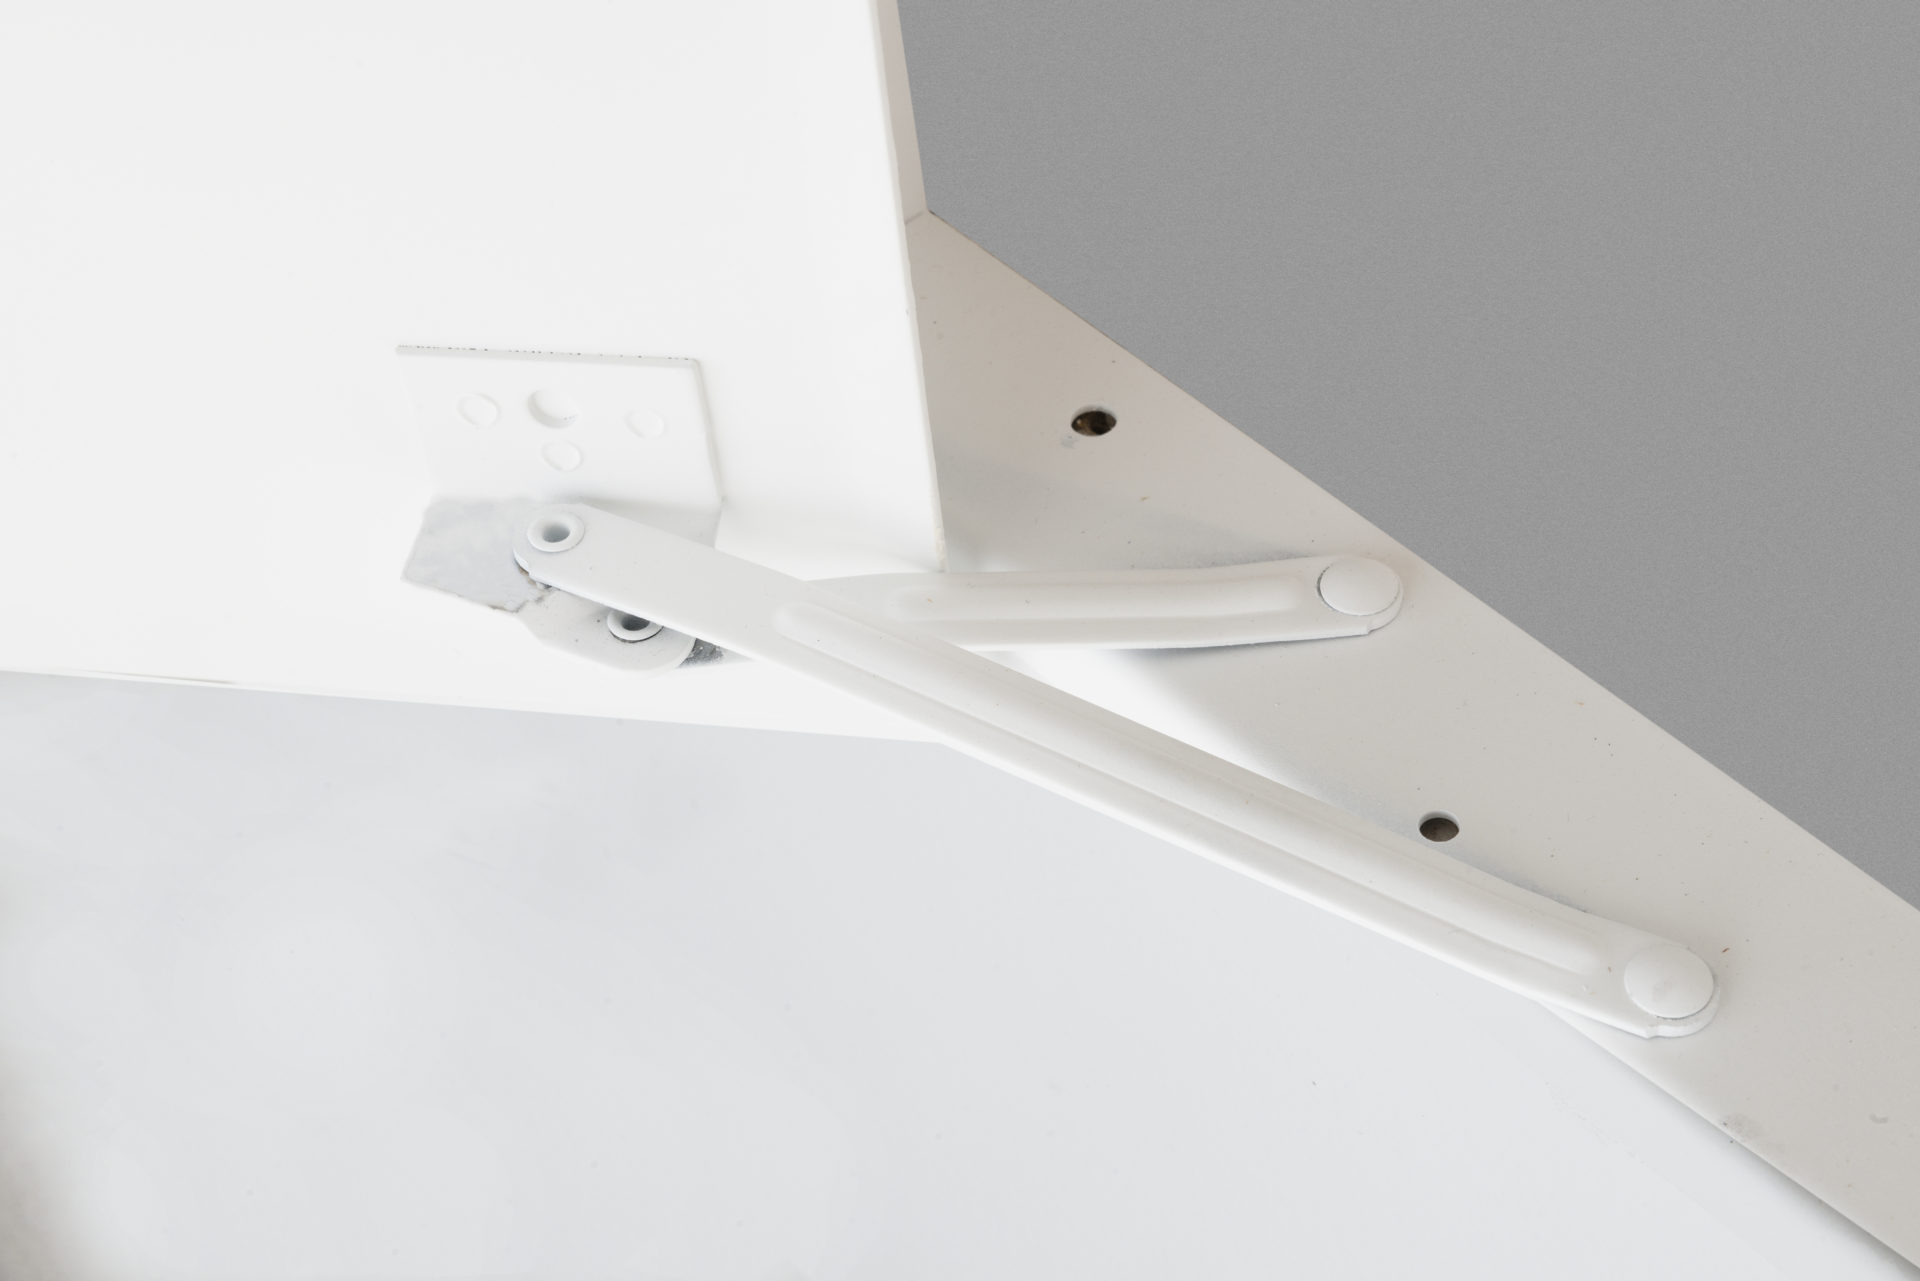 Flush Universal Access Door with Hidden Flange, screwdriver operated cam latch, pantograph hinge